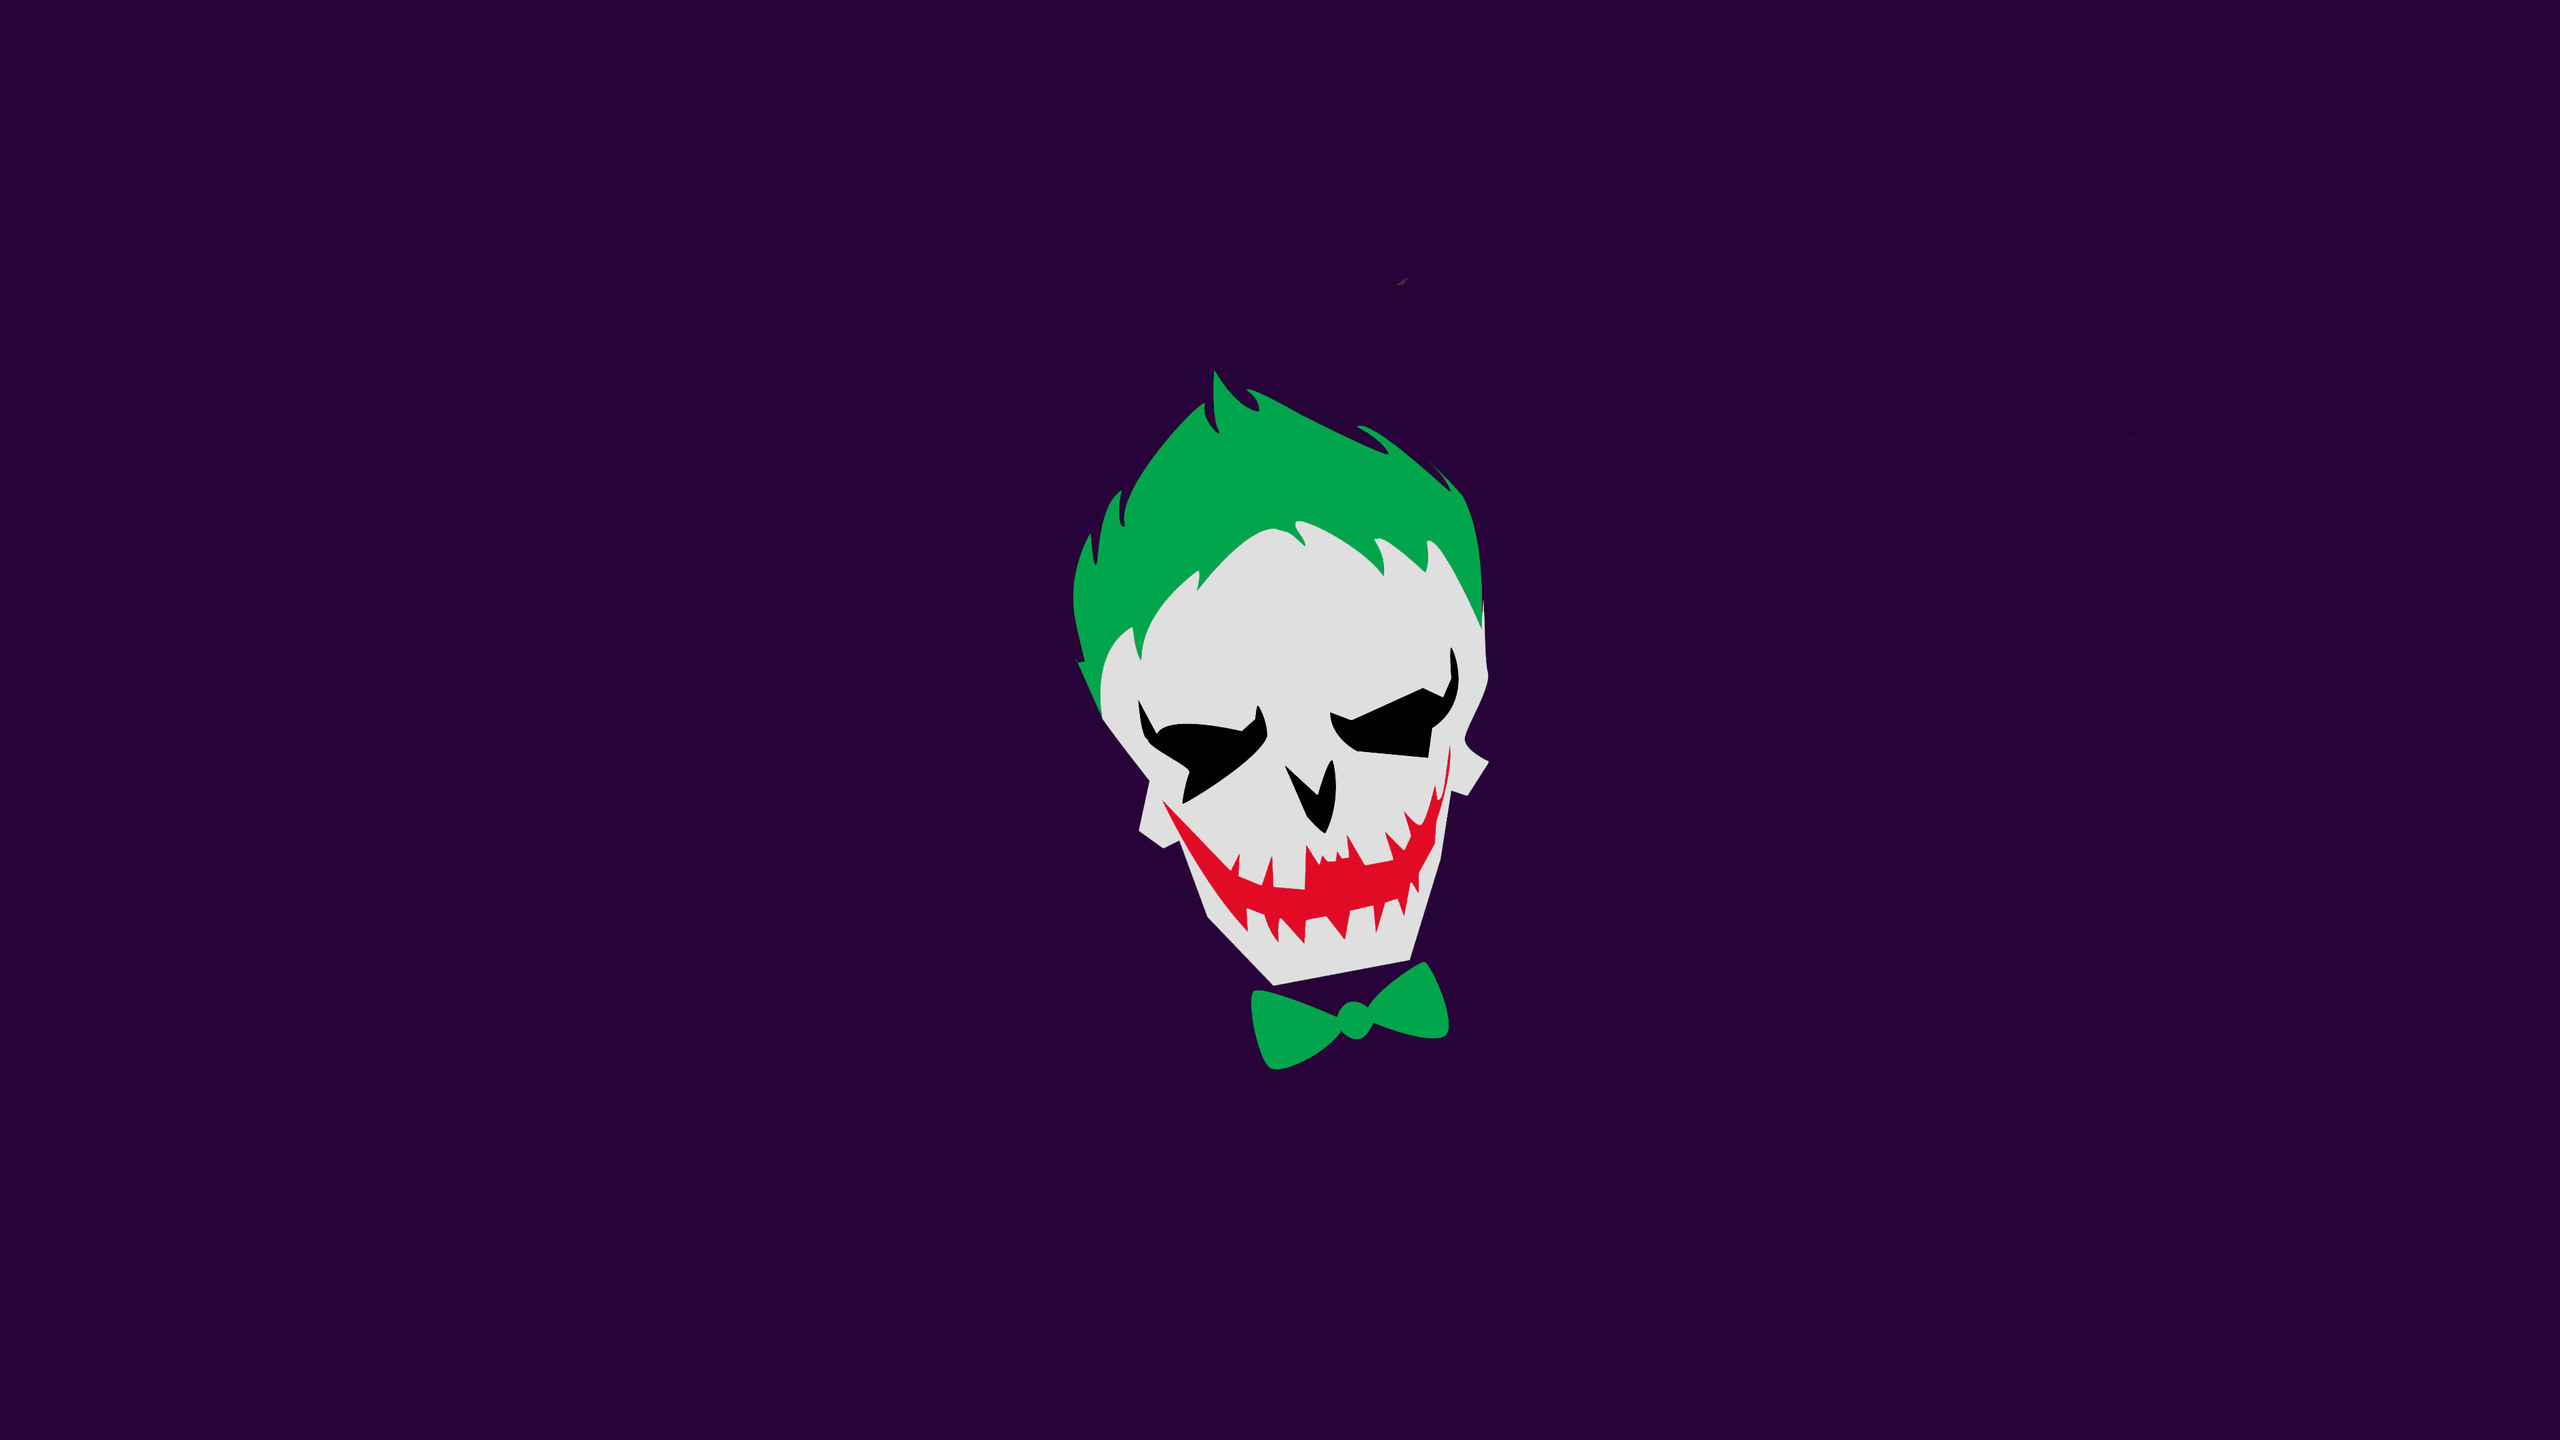 2560x1440 joker minimalism 4k 1440p resolution hd 4k for Joker immagini hd